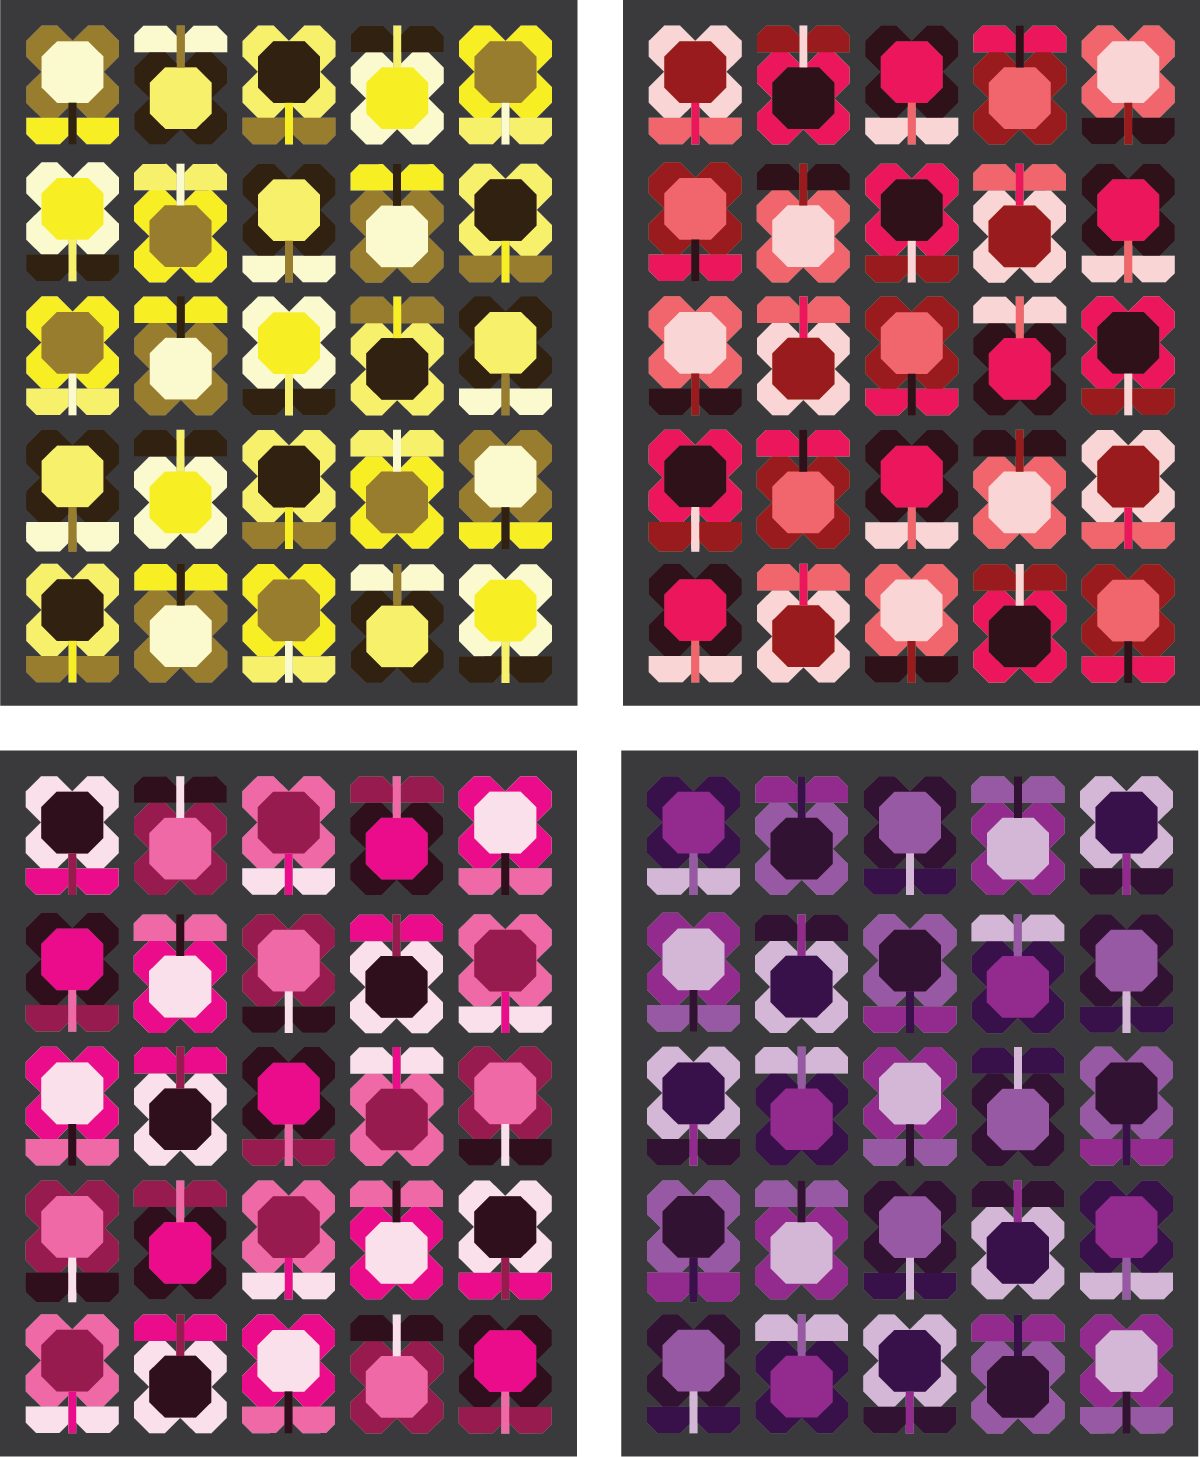 Folk Blooms Quilt in warm colors - Sewfinity.com